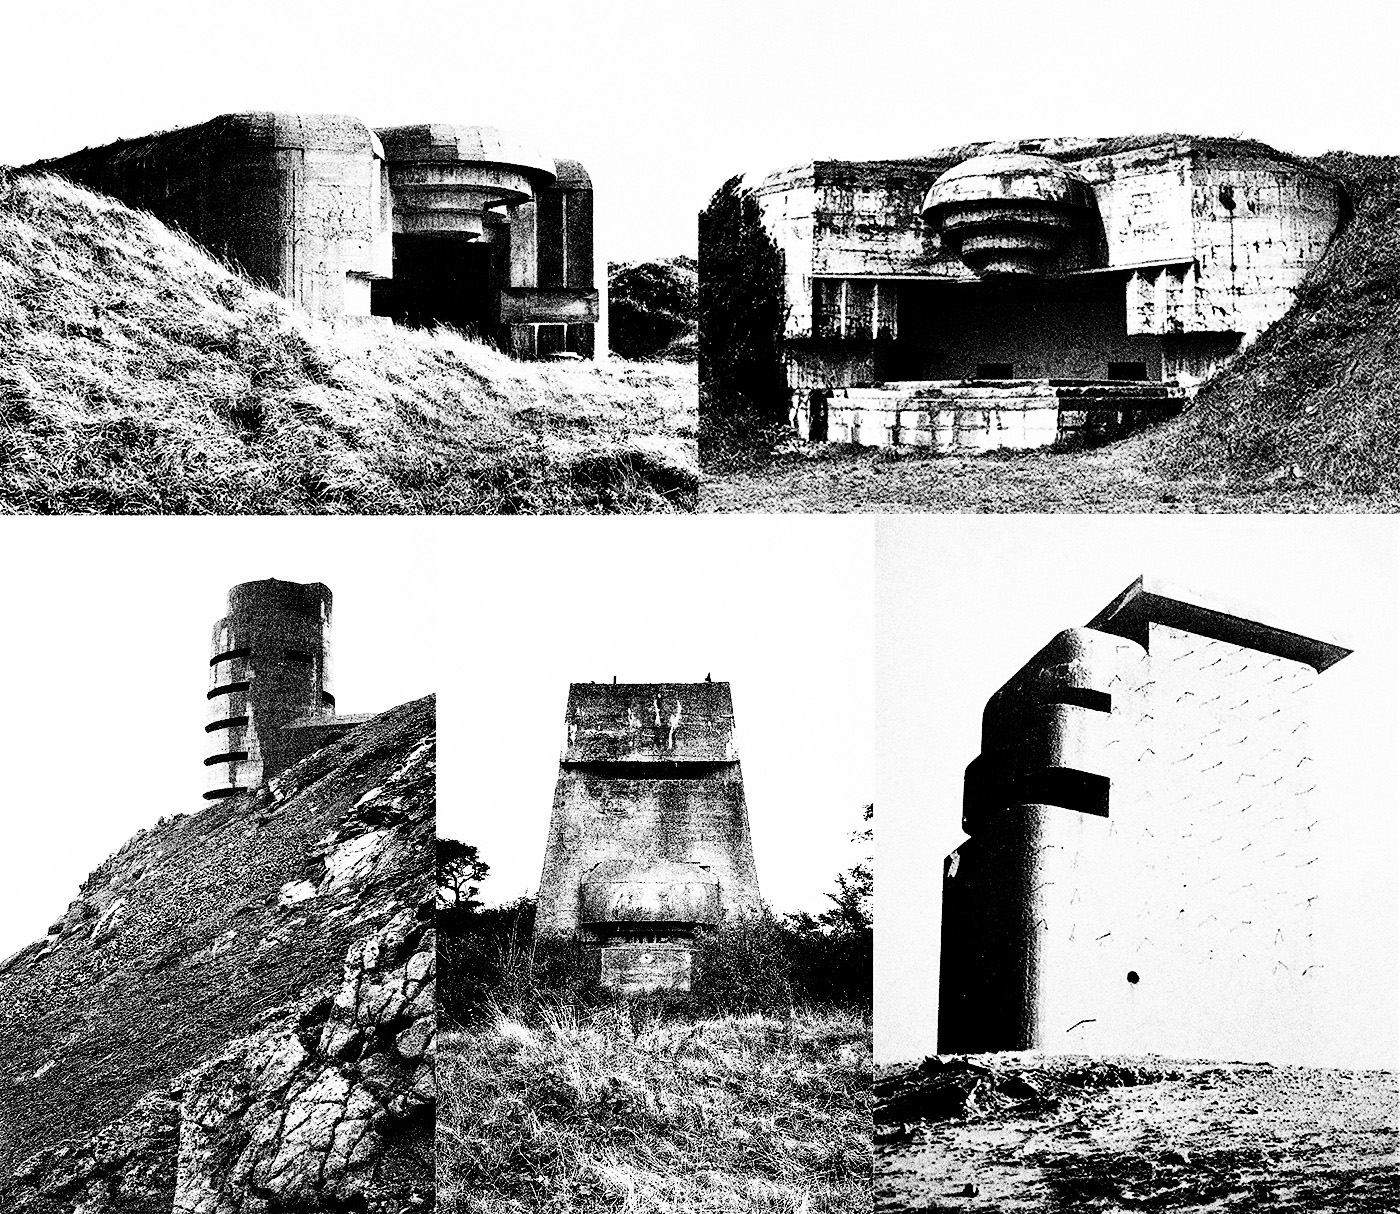 Paul Virilio-Bunker Archaeology-Princeton Architectural Press-A Year In The Country-1